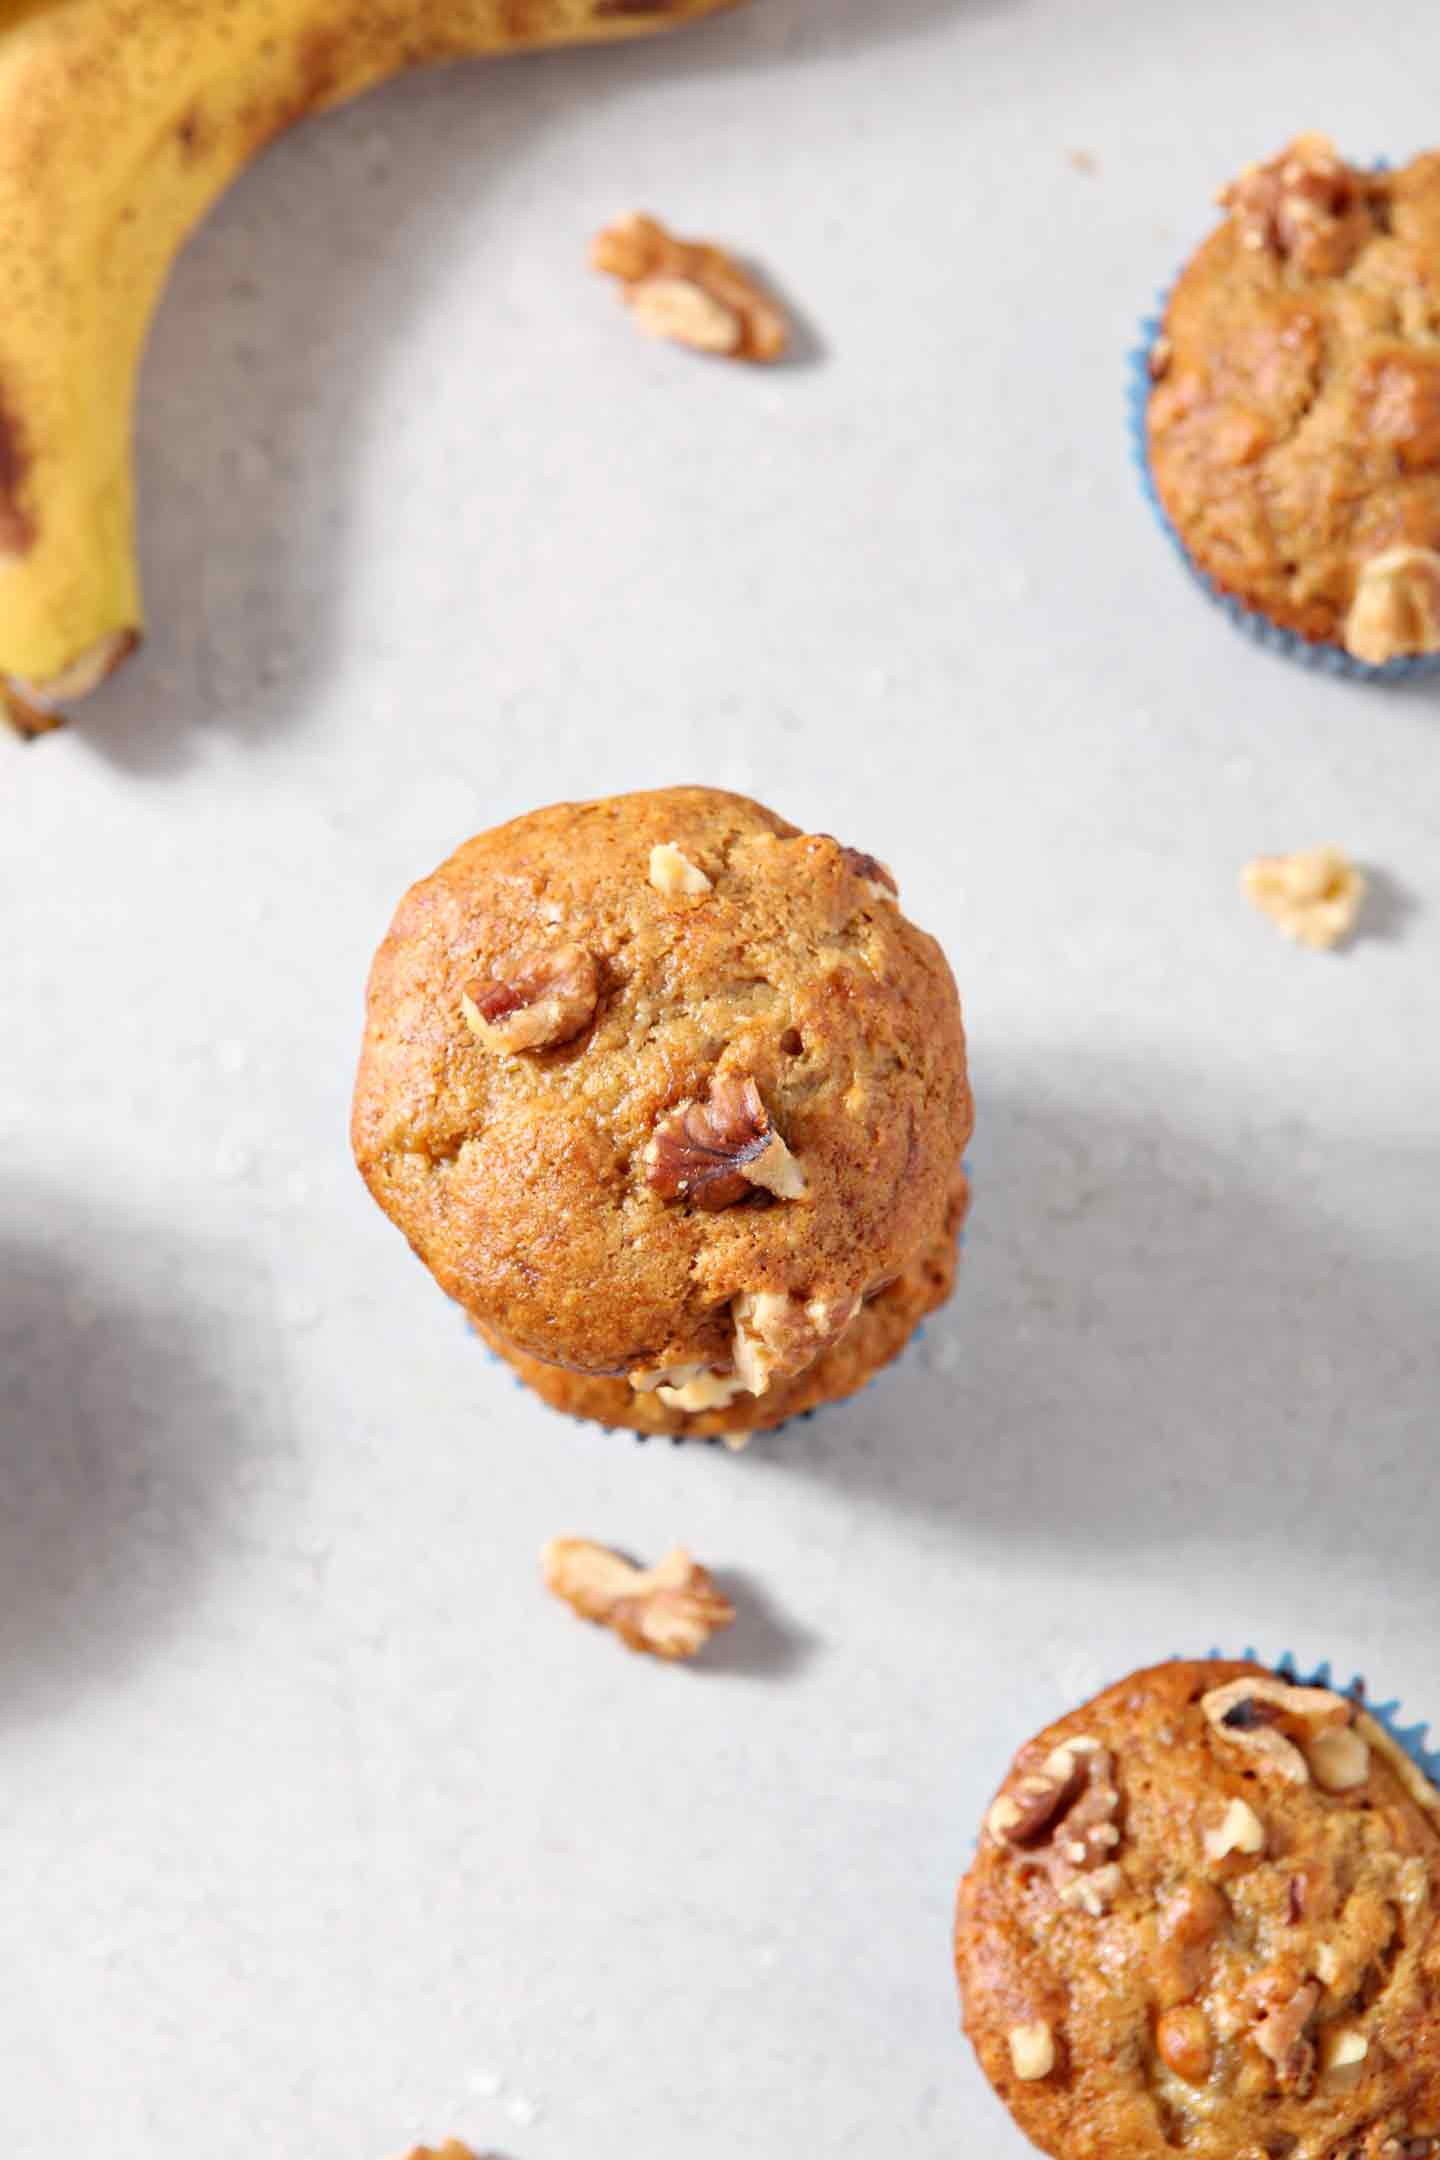 Overhead image of Vegan Banana Muffins, shown with walnuts and bananas